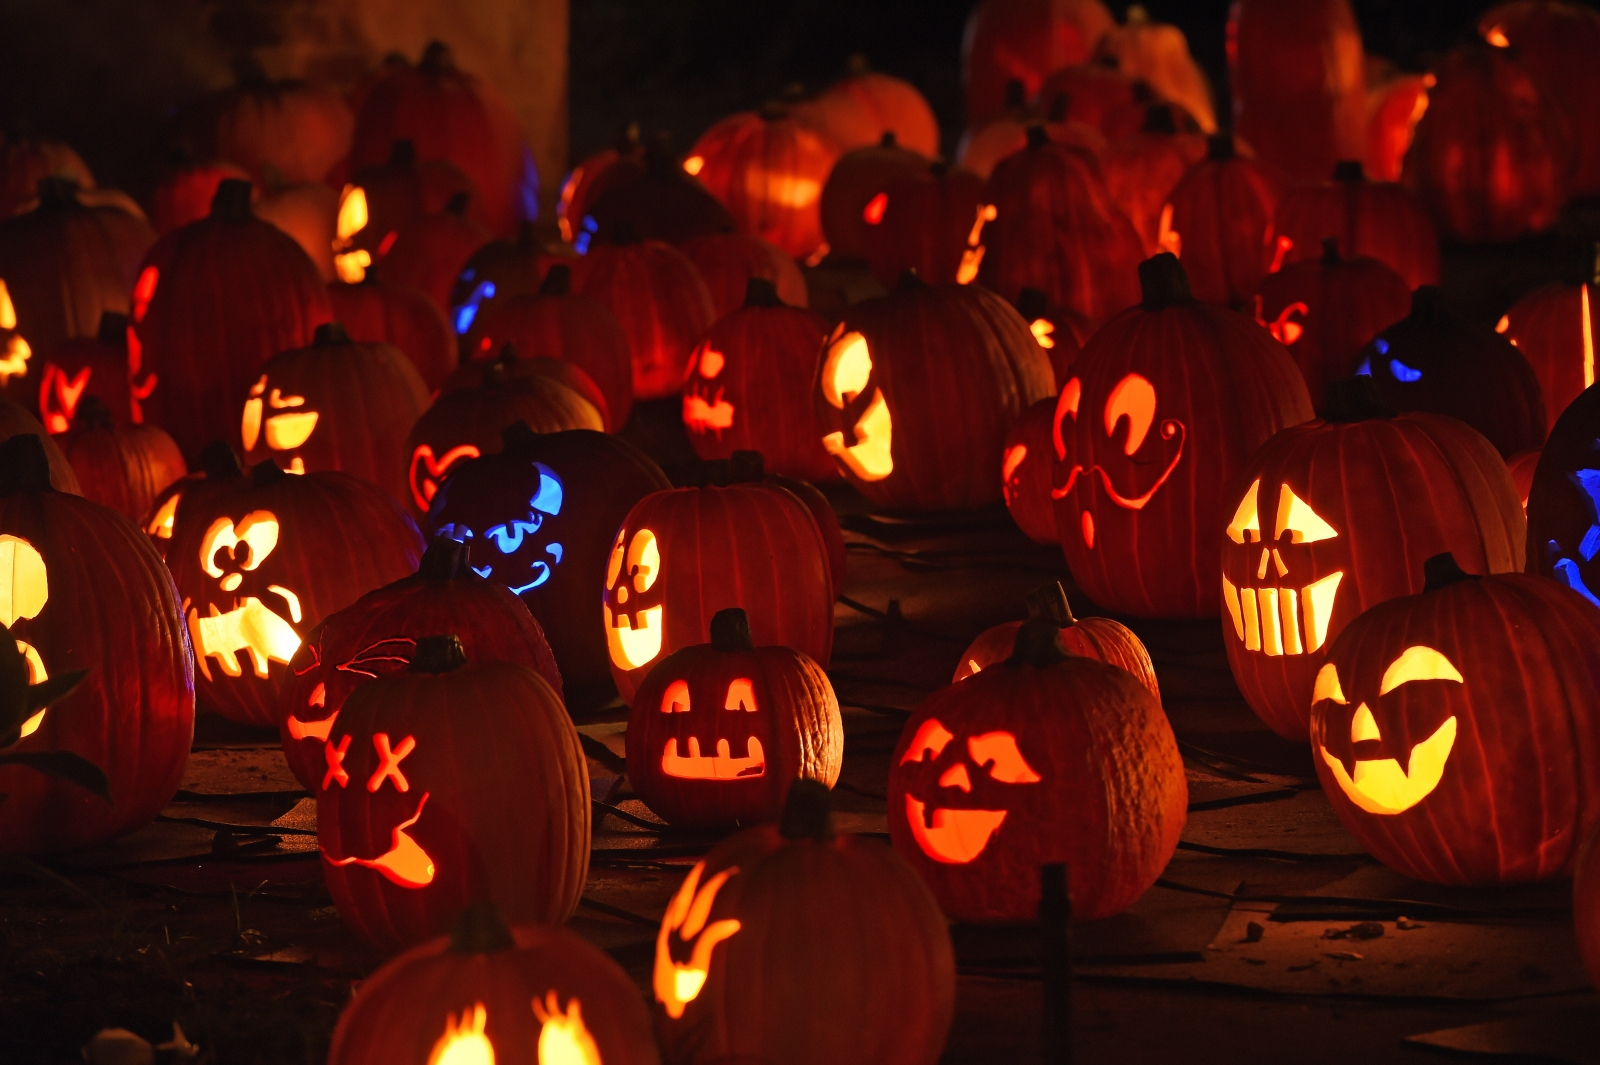 Jack-o'-Lanterns on show at an exhibition in La Canada Flintridge, California